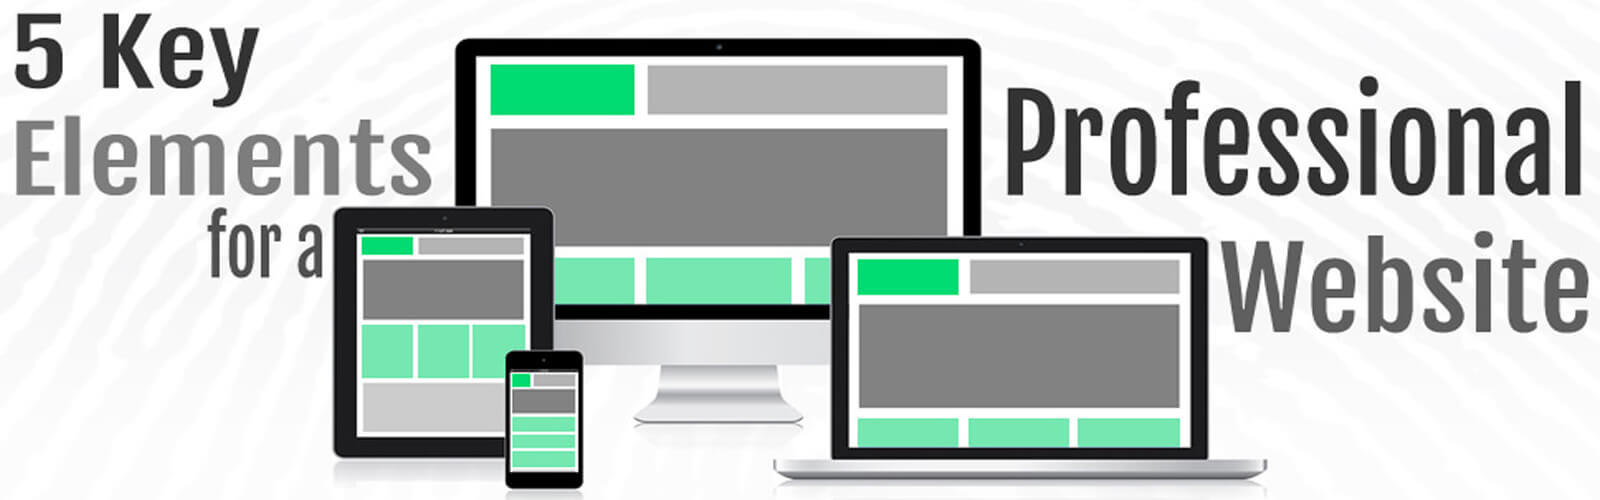 5 key elements for a professional website